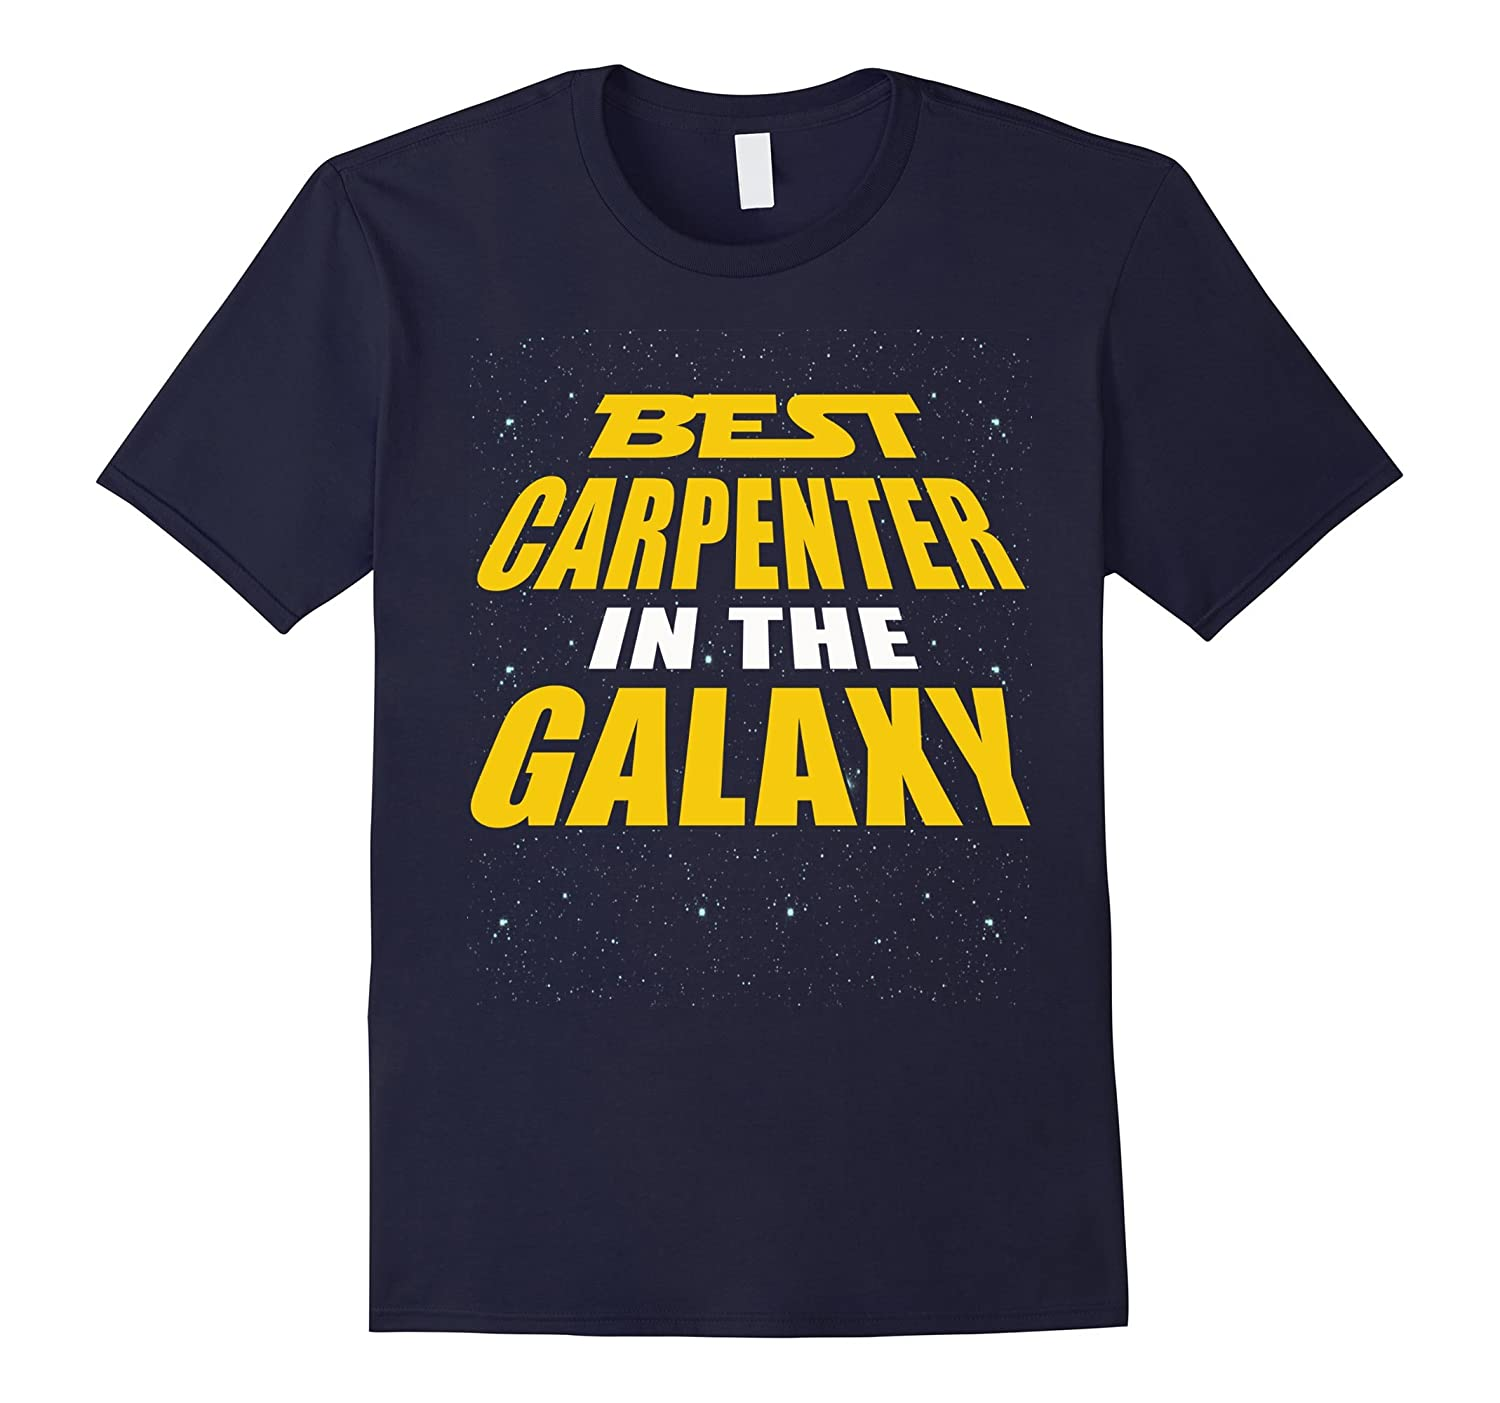 Best Carpenter In The Galaxy - Gift Shirt For Carpenter-TD